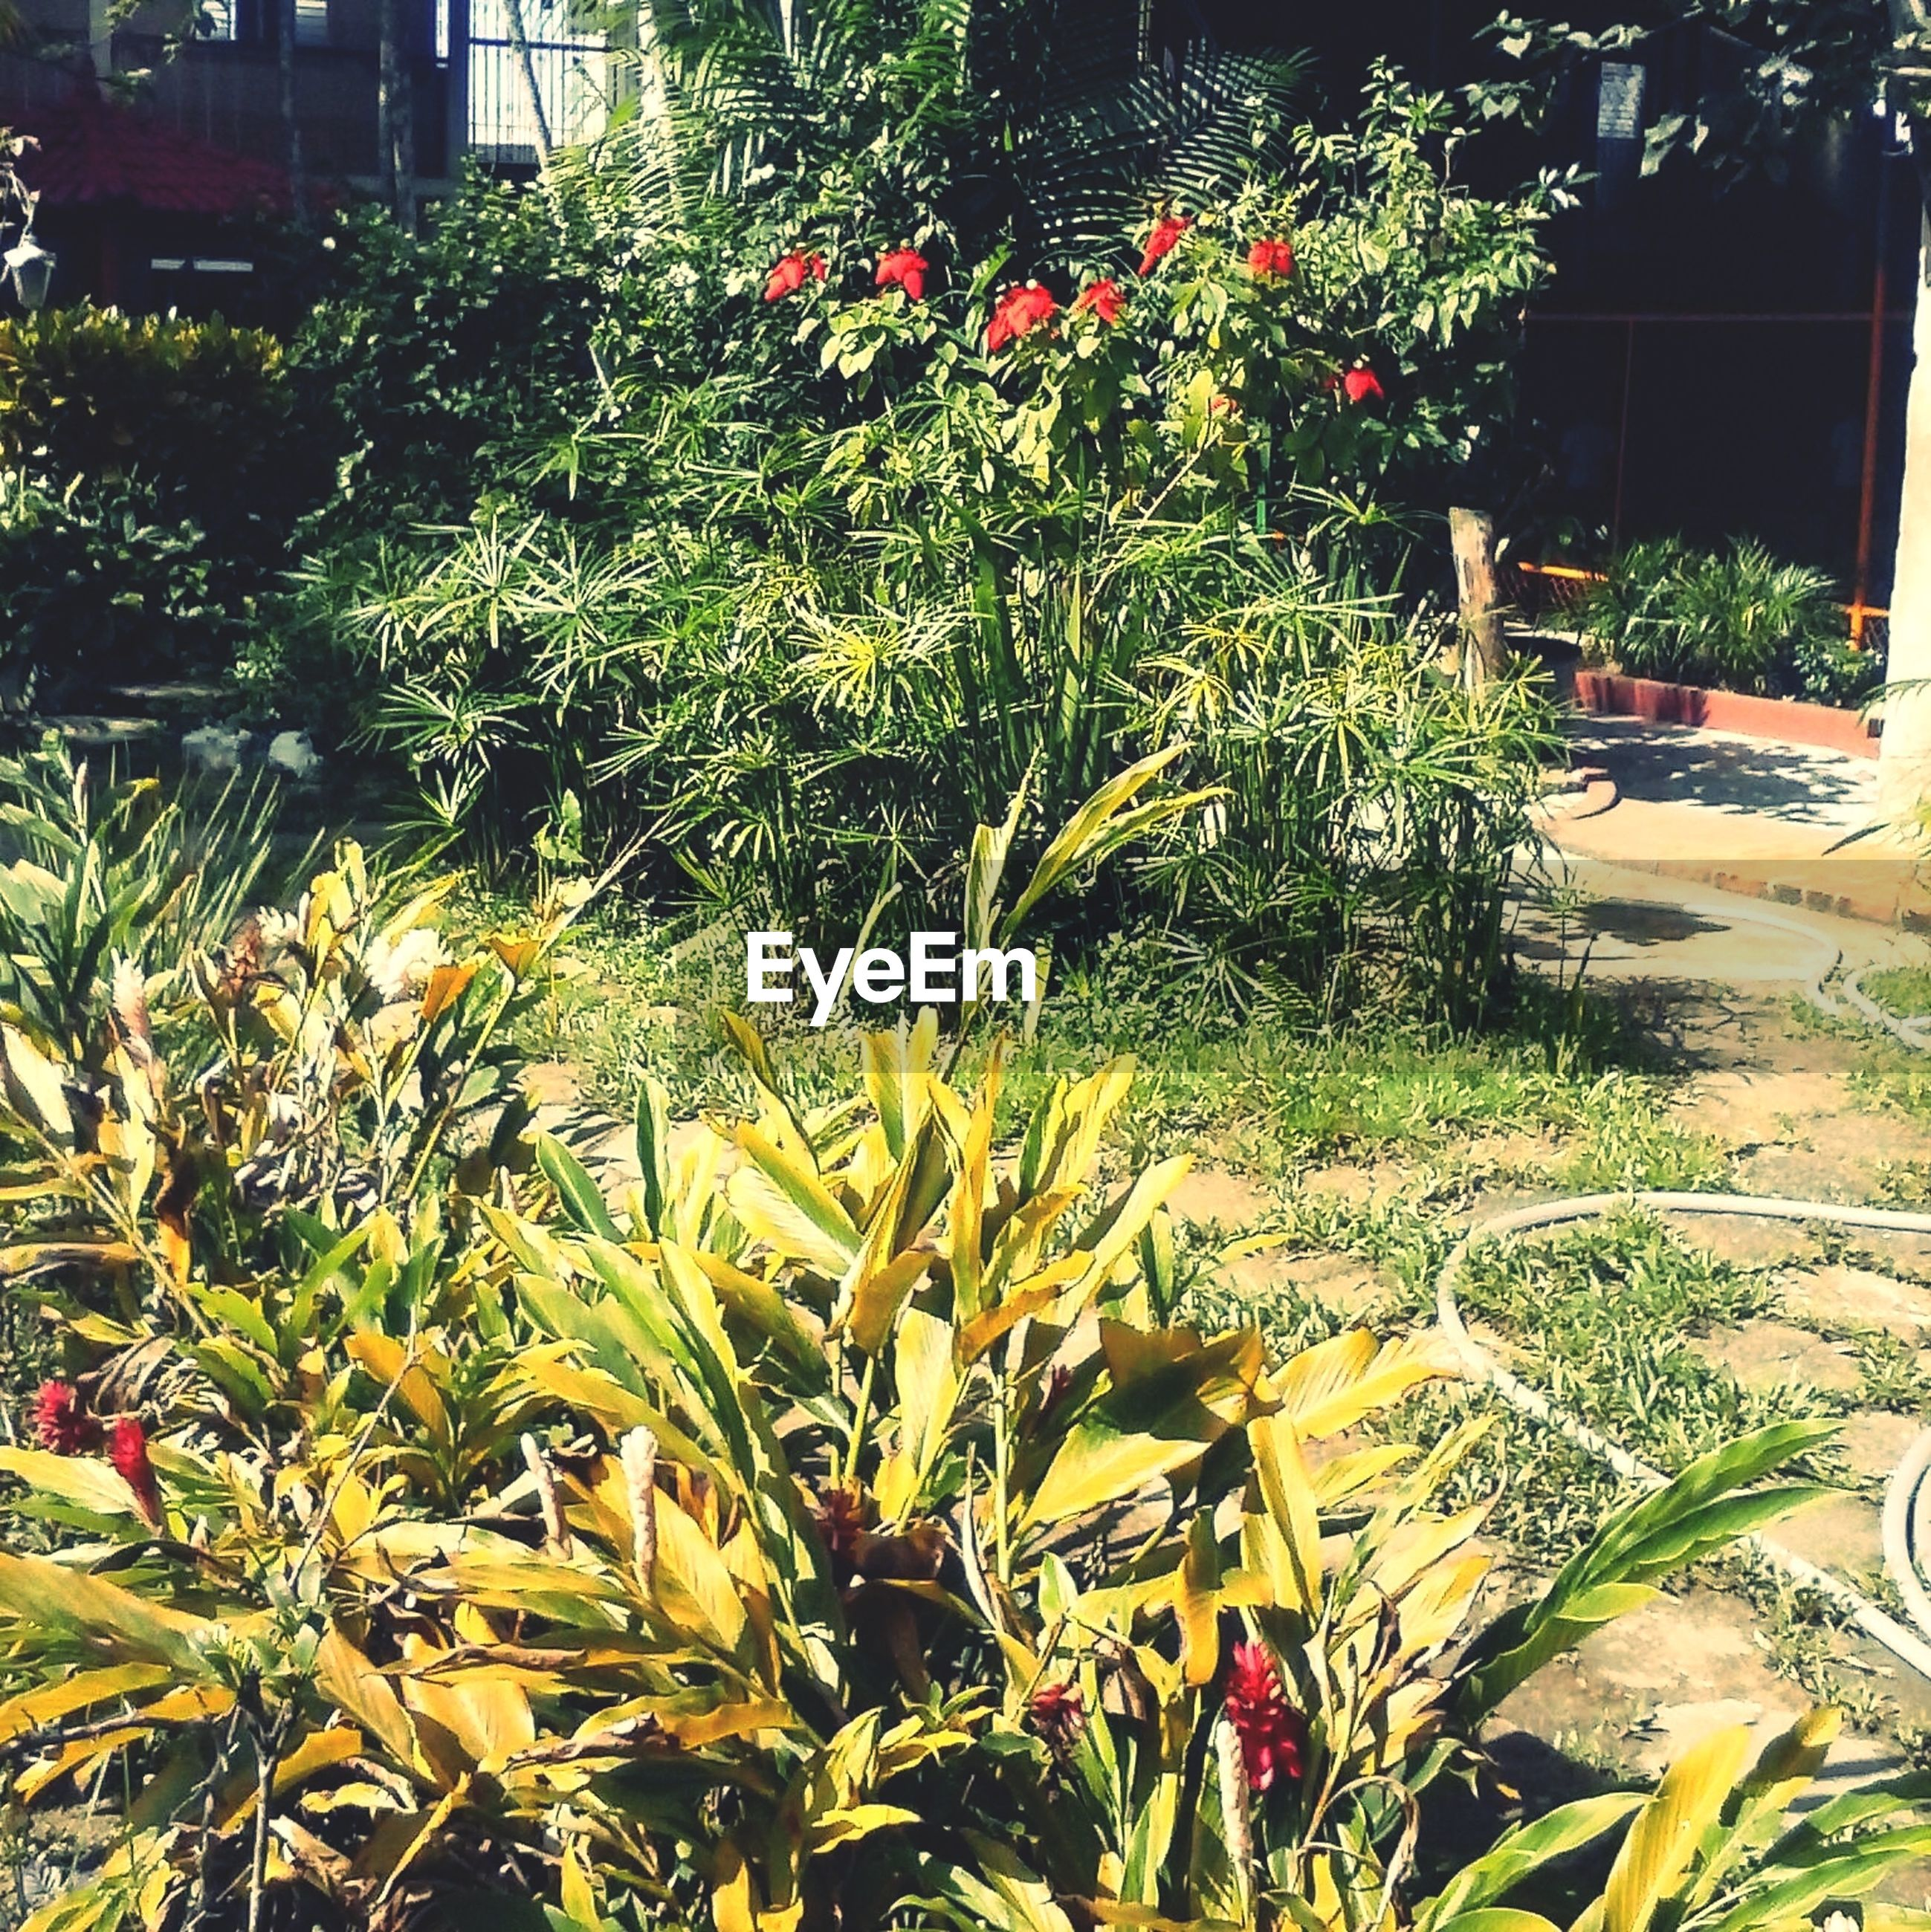 growth, plant, building exterior, flower, freshness, nature, leaf, growing, green color, built structure, house, architecture, beauty in nature, front or back yard, tree, outdoors, no people, day, sunlight, branch